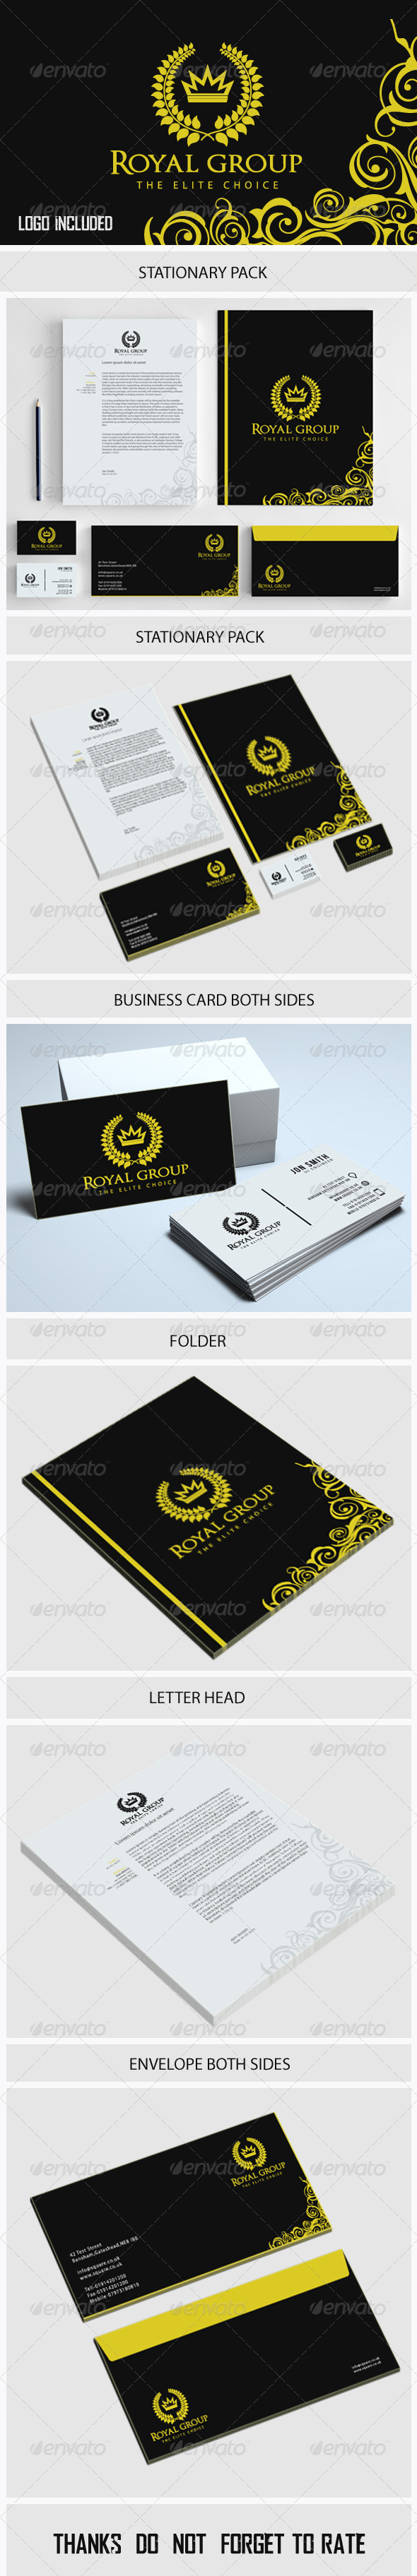 GraphicRiver Royal Group Stationary 5771198